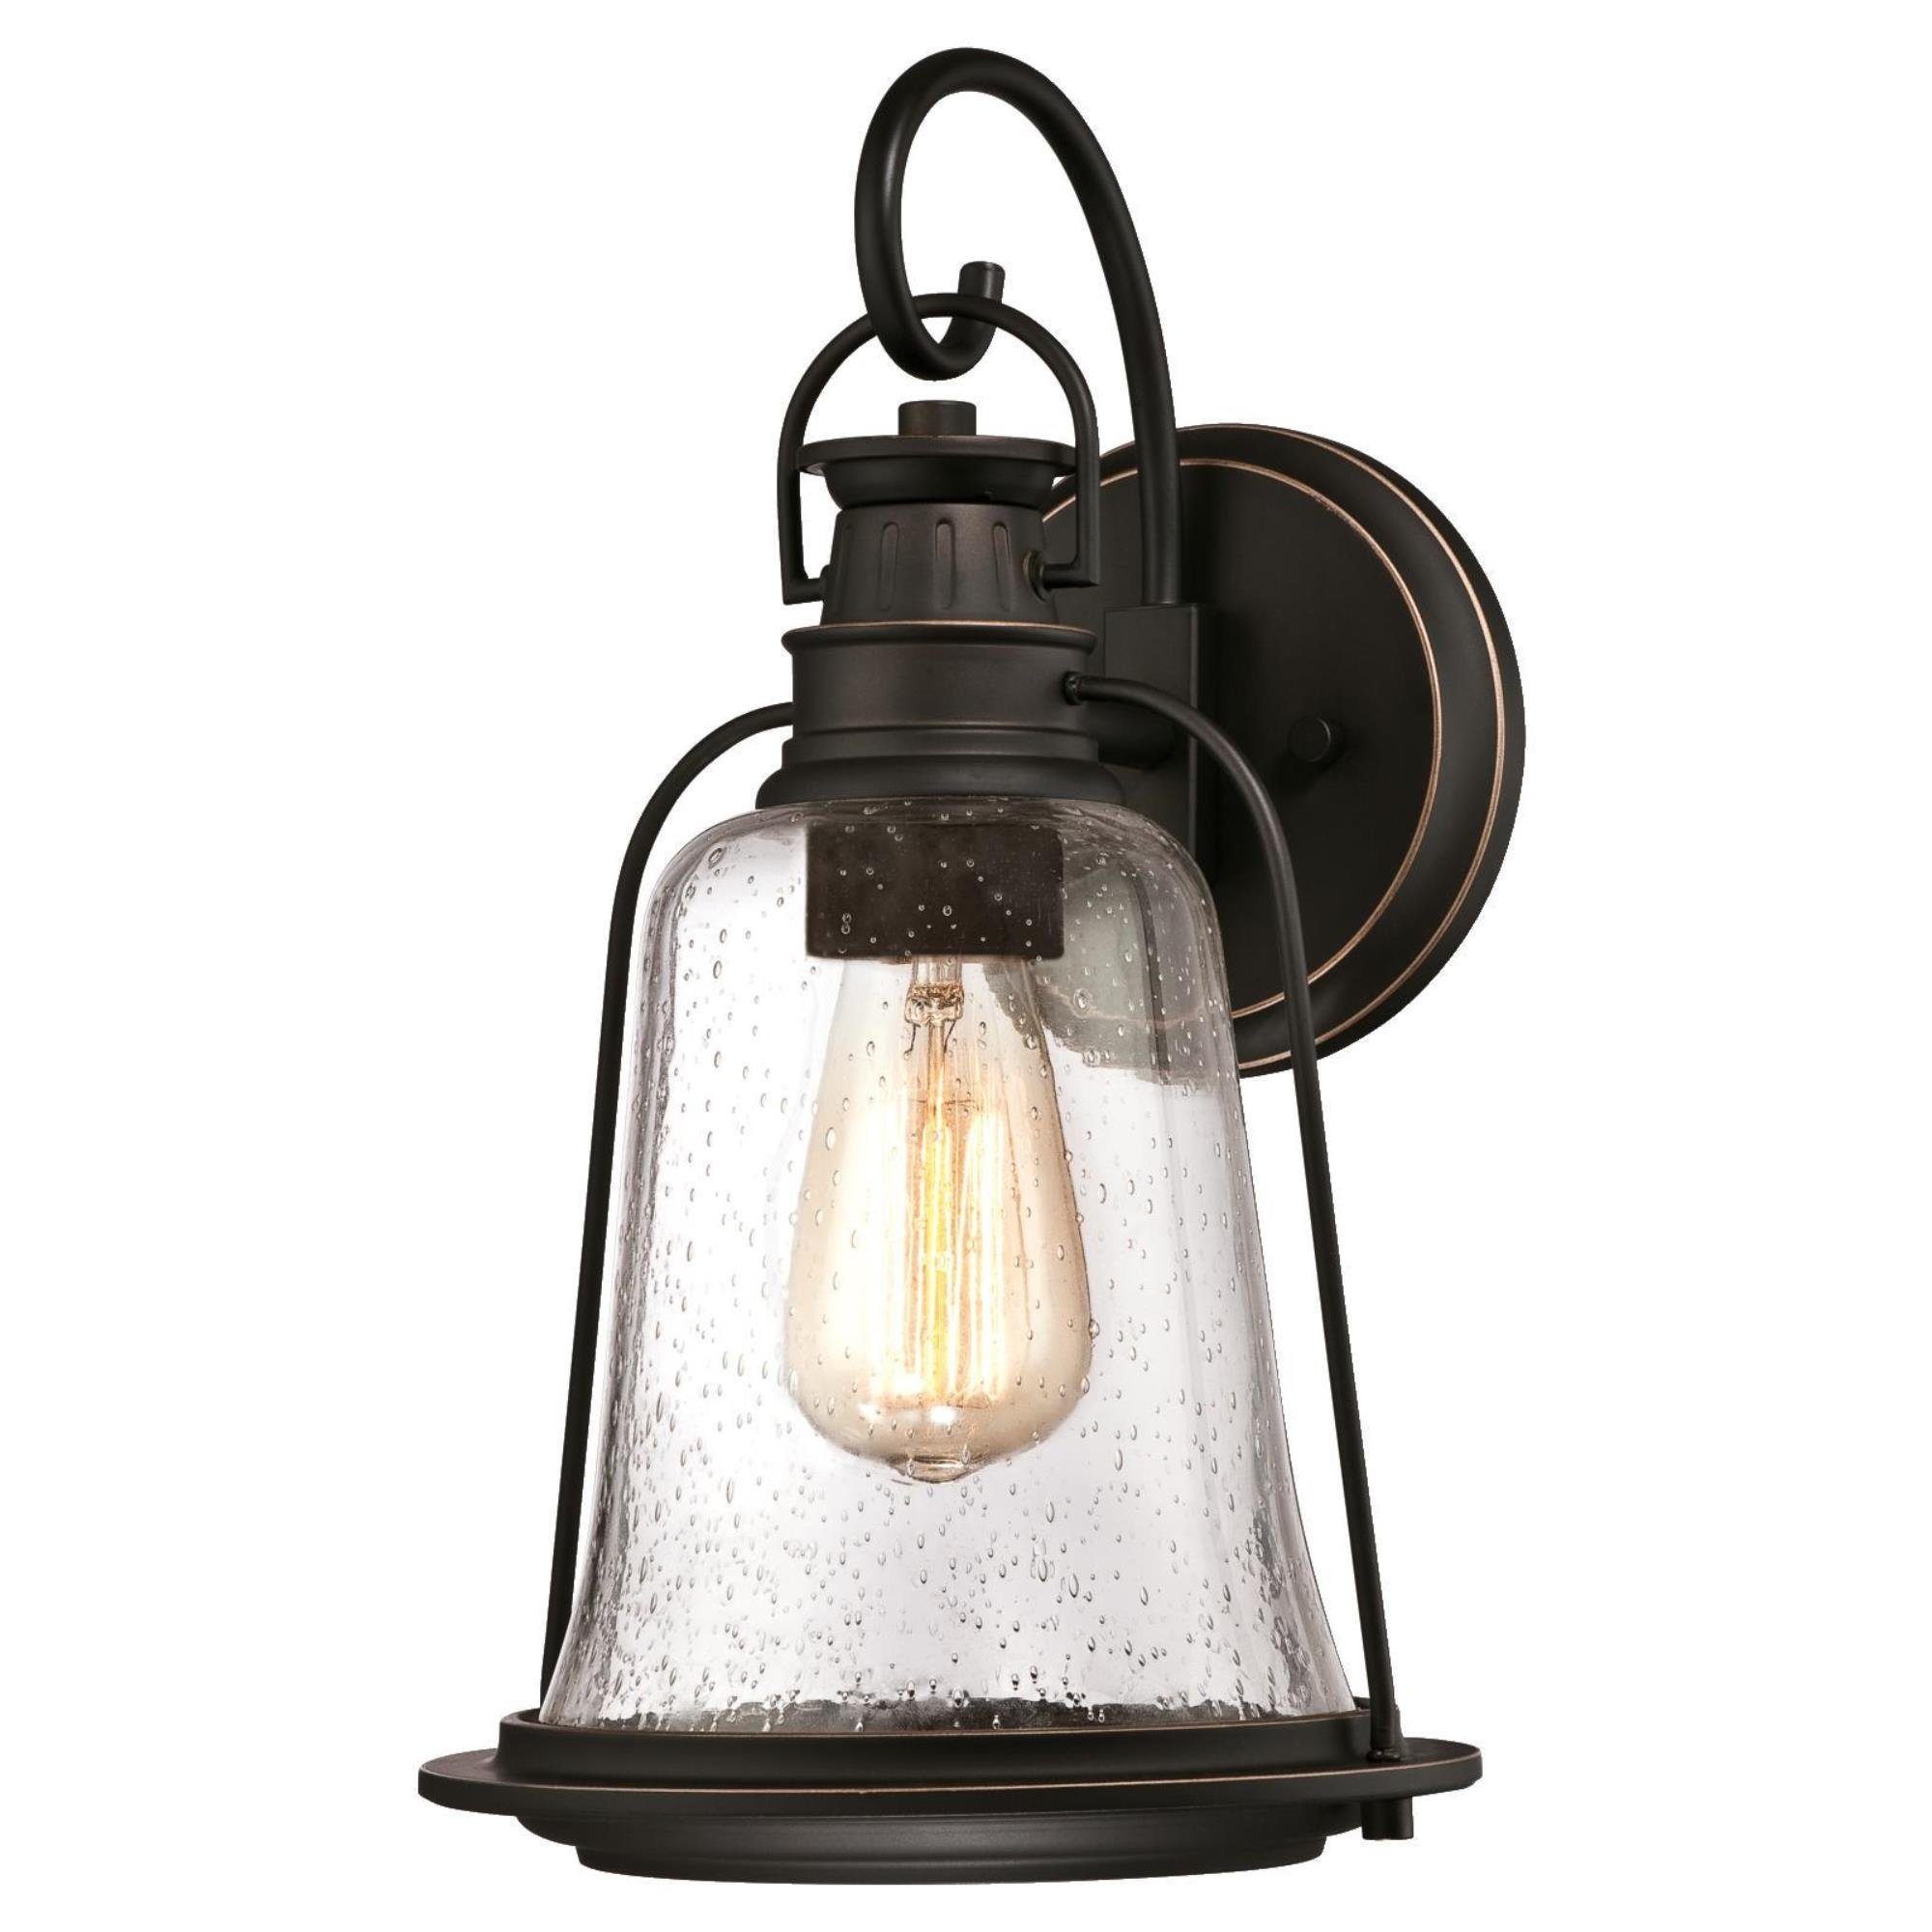 Westinghouse Lighting 6349100 Brynn One-Light Outdoor Wall Fixture, Oil Rubbed Bronze Finish with Highlights and Clear Seeded Glass